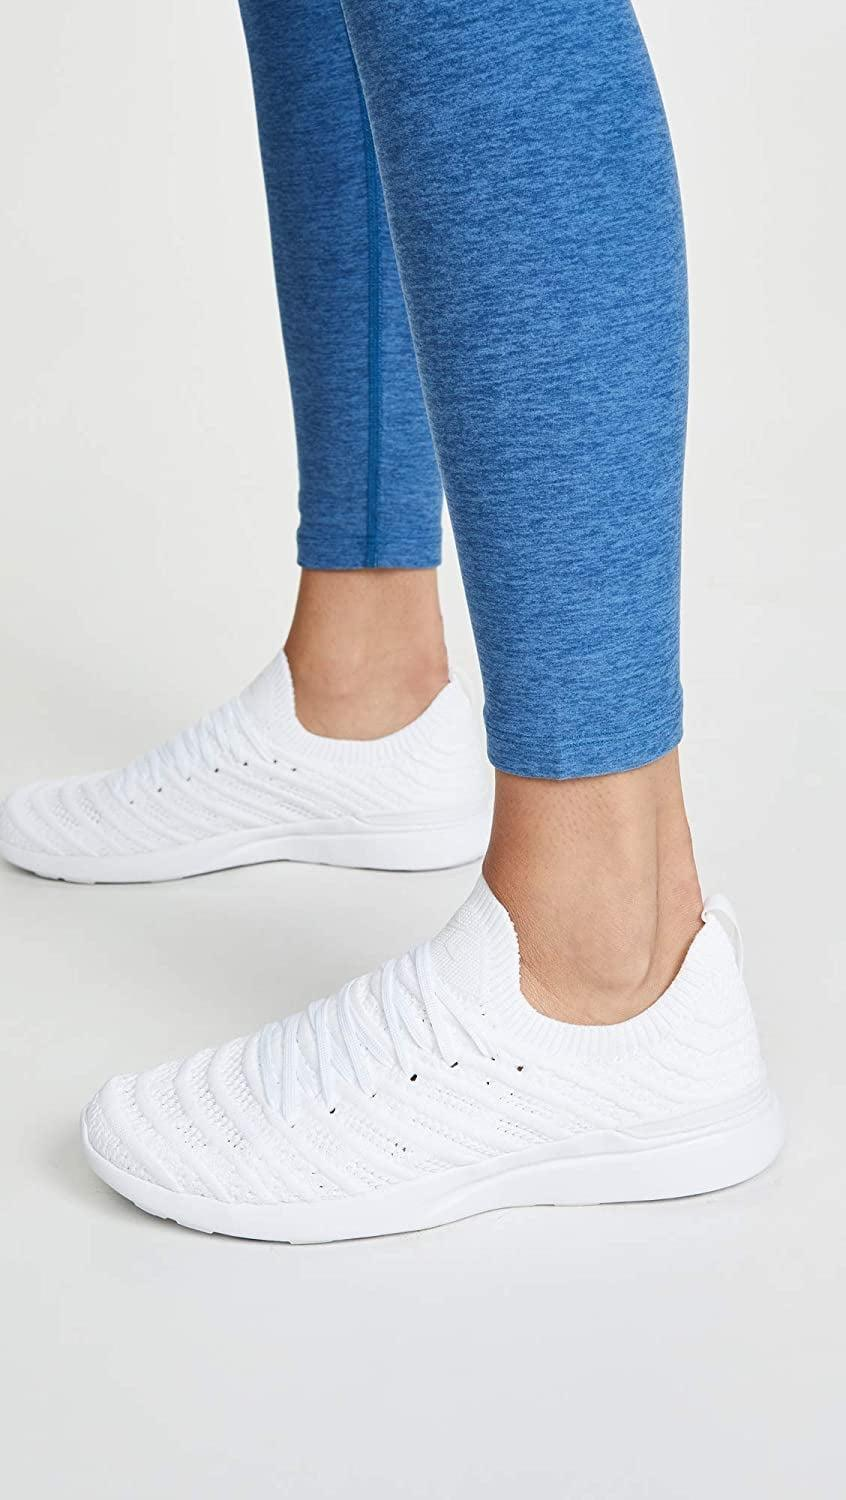 <p>We're obsessed with these <span>APL Techloom Wave Sneakers</span> ($230). Not only do they look great, they also hug your foot perfectly, so you can move with ease.</p>